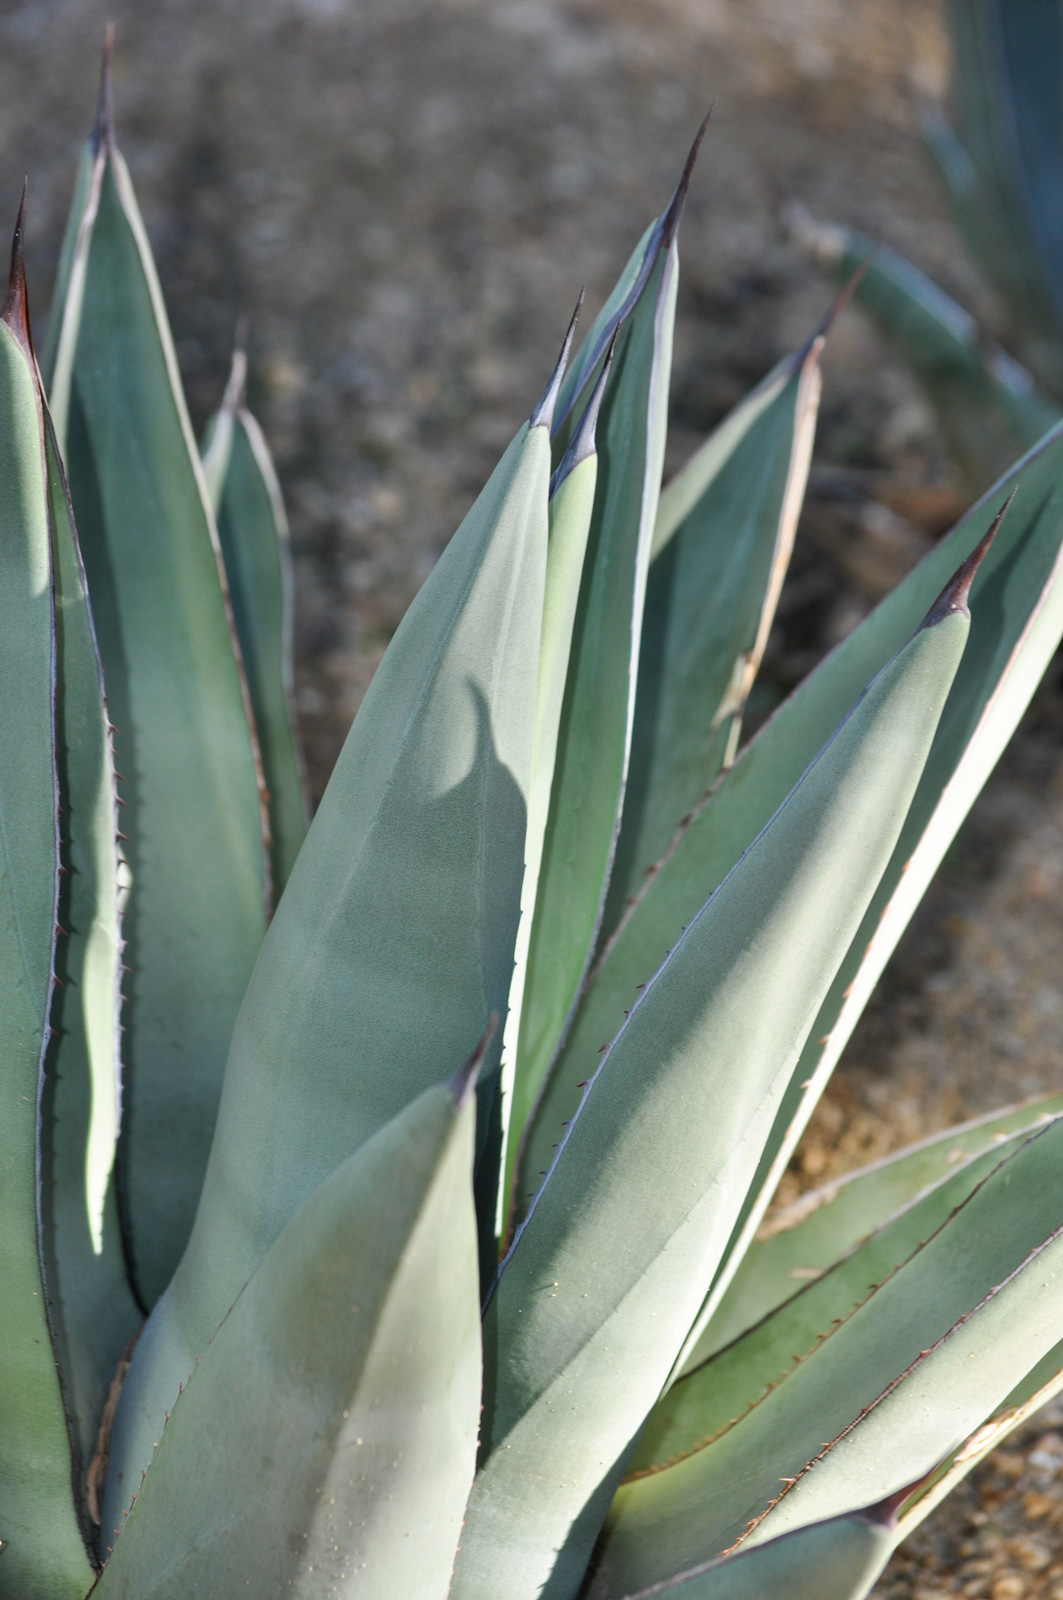 A close-up of the leaves and spines of the Sharkskin Agave.